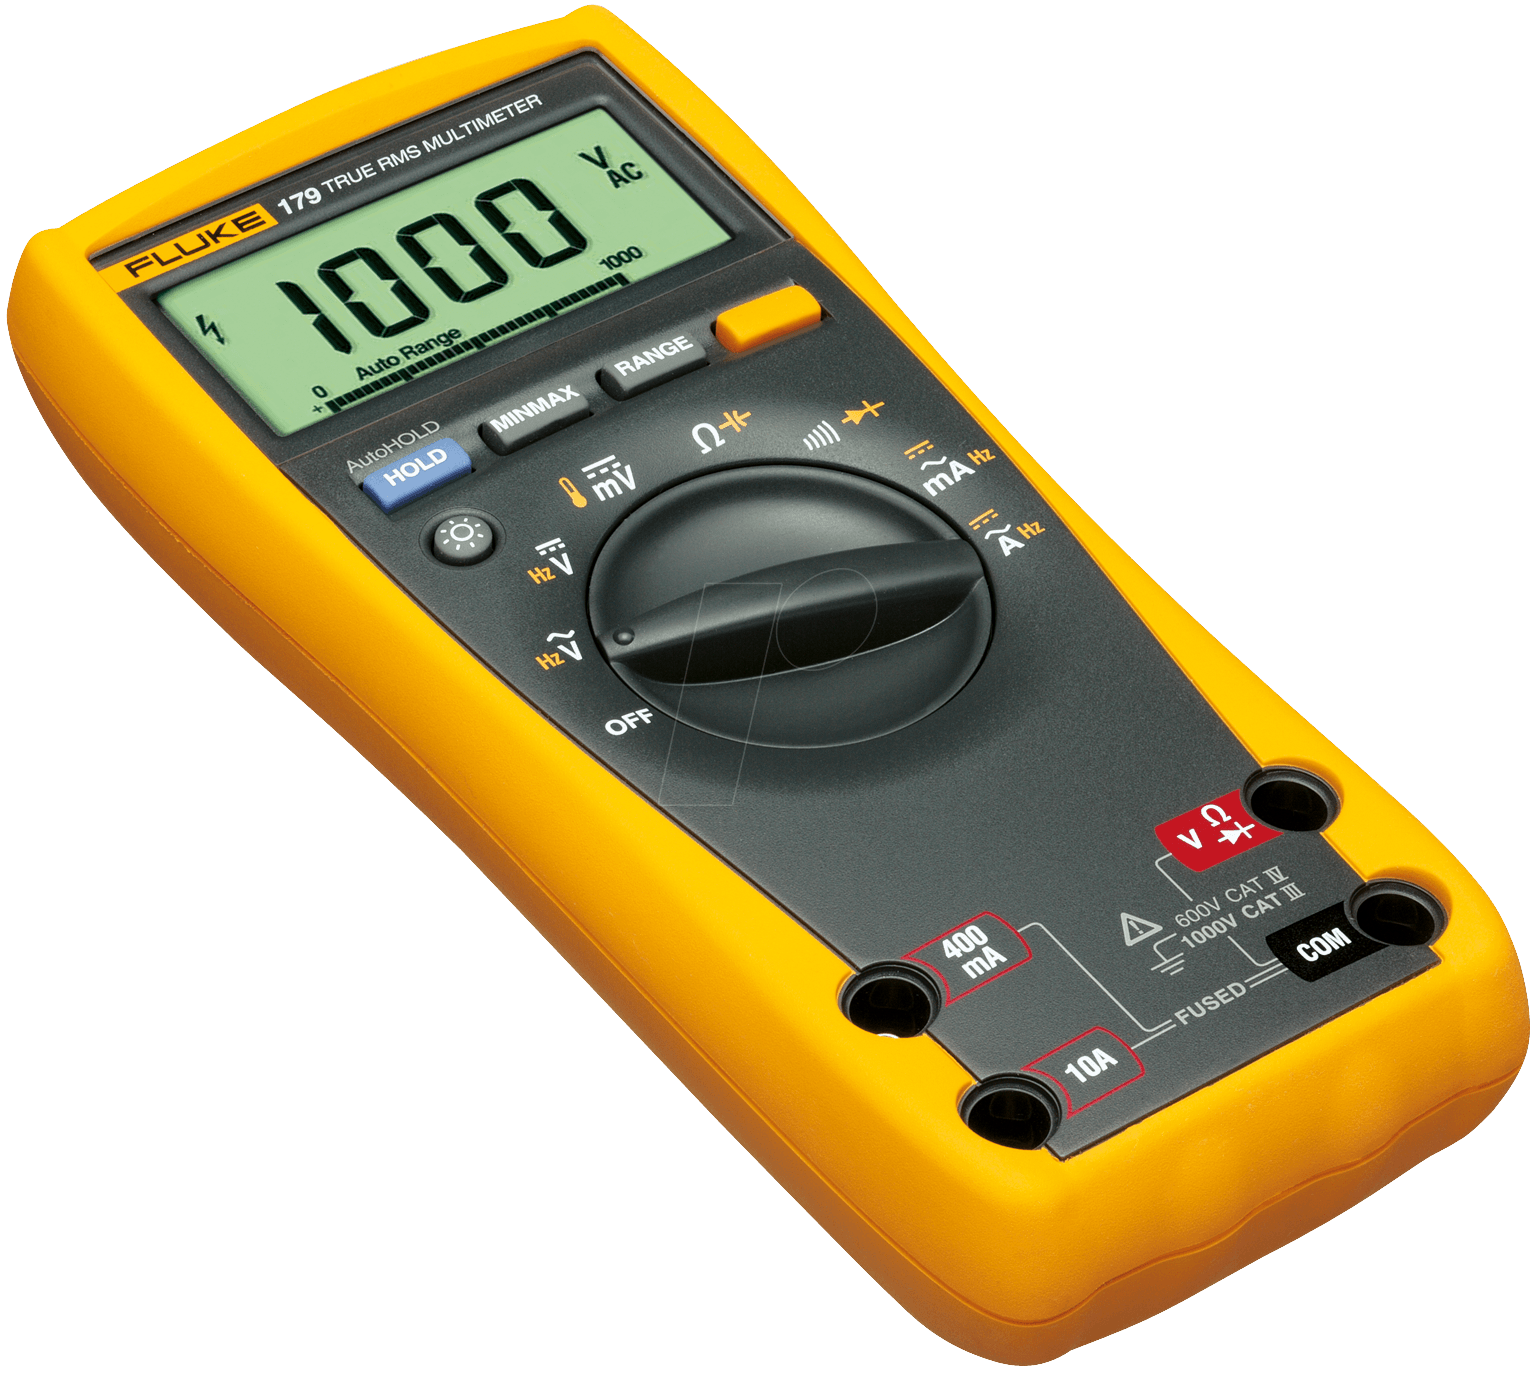 fluke 179 universele digitale multimeter fluke 179 bei reichelt elektronik. Black Bedroom Furniture Sets. Home Design Ideas